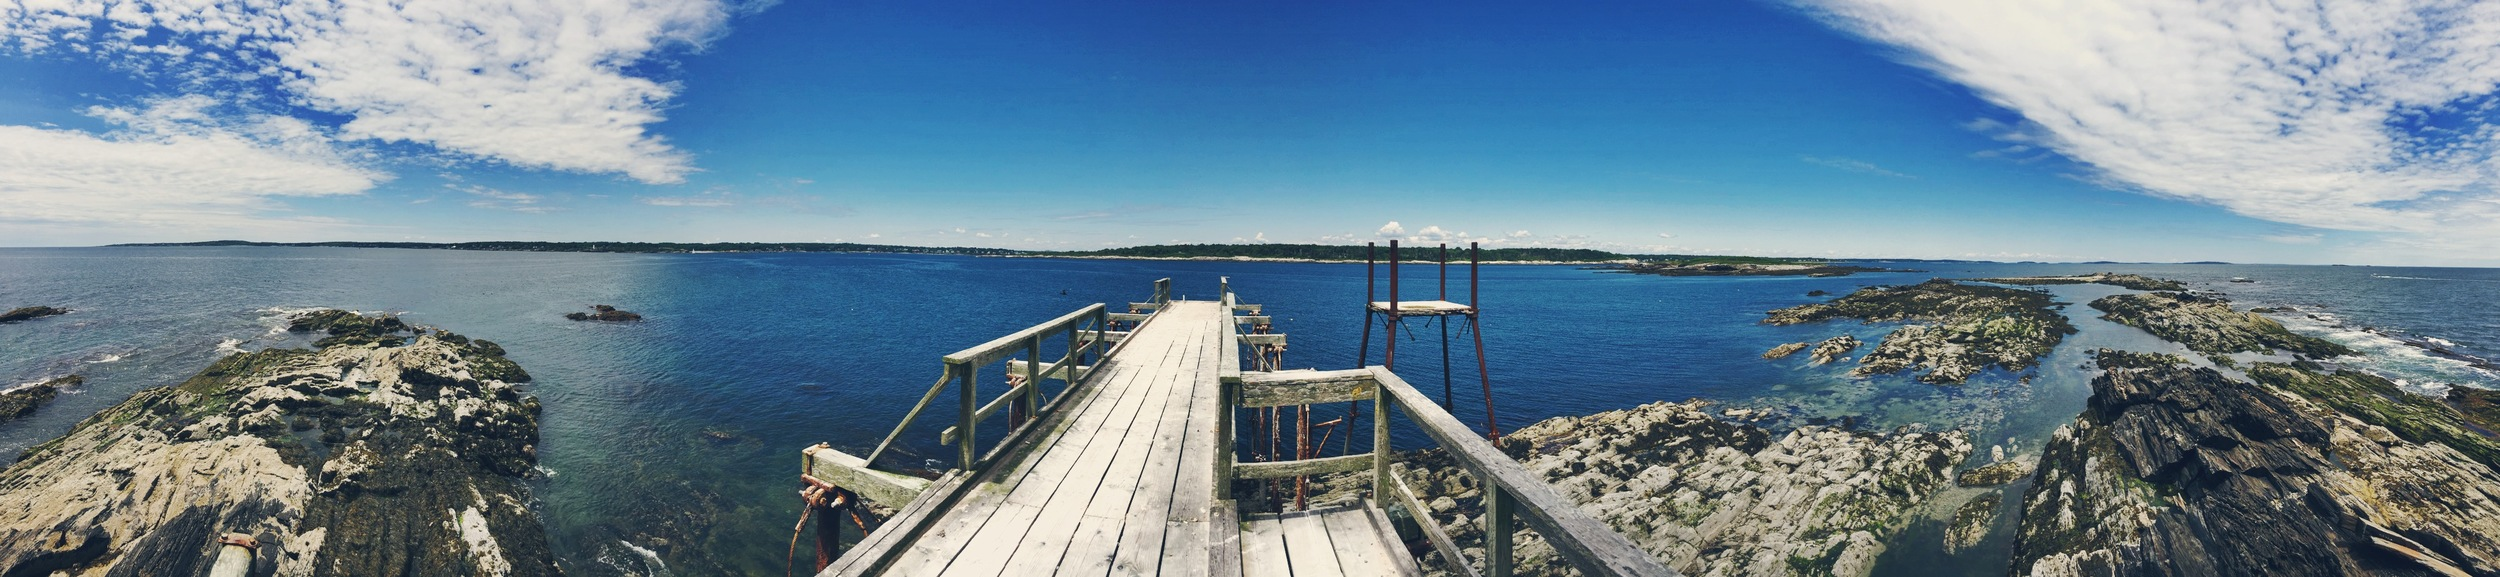 Panoramic view from the lighthouse bridge.